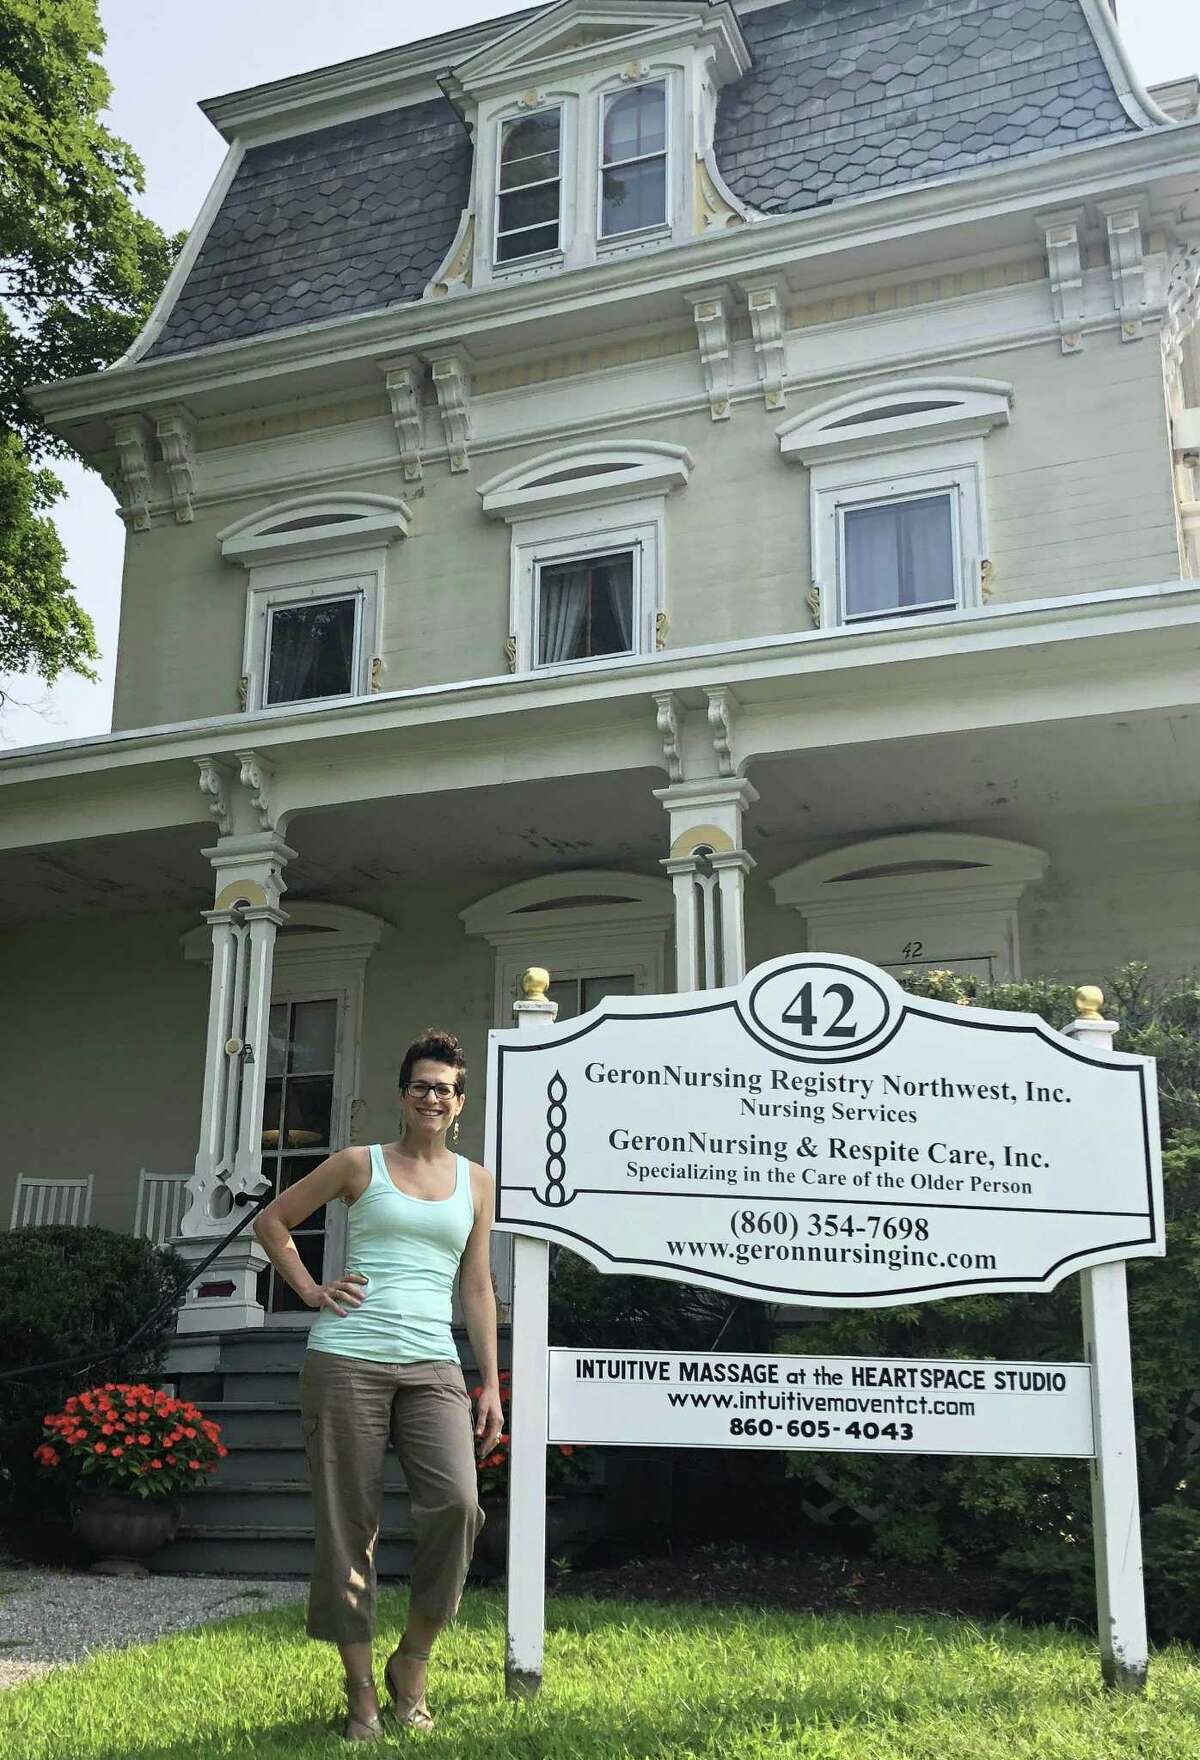 The HeartSpace Studio for the Healing Arts, owned by Lisa Lent, a licensed massage therapist, is housed at 42 Main St. in New Milford.